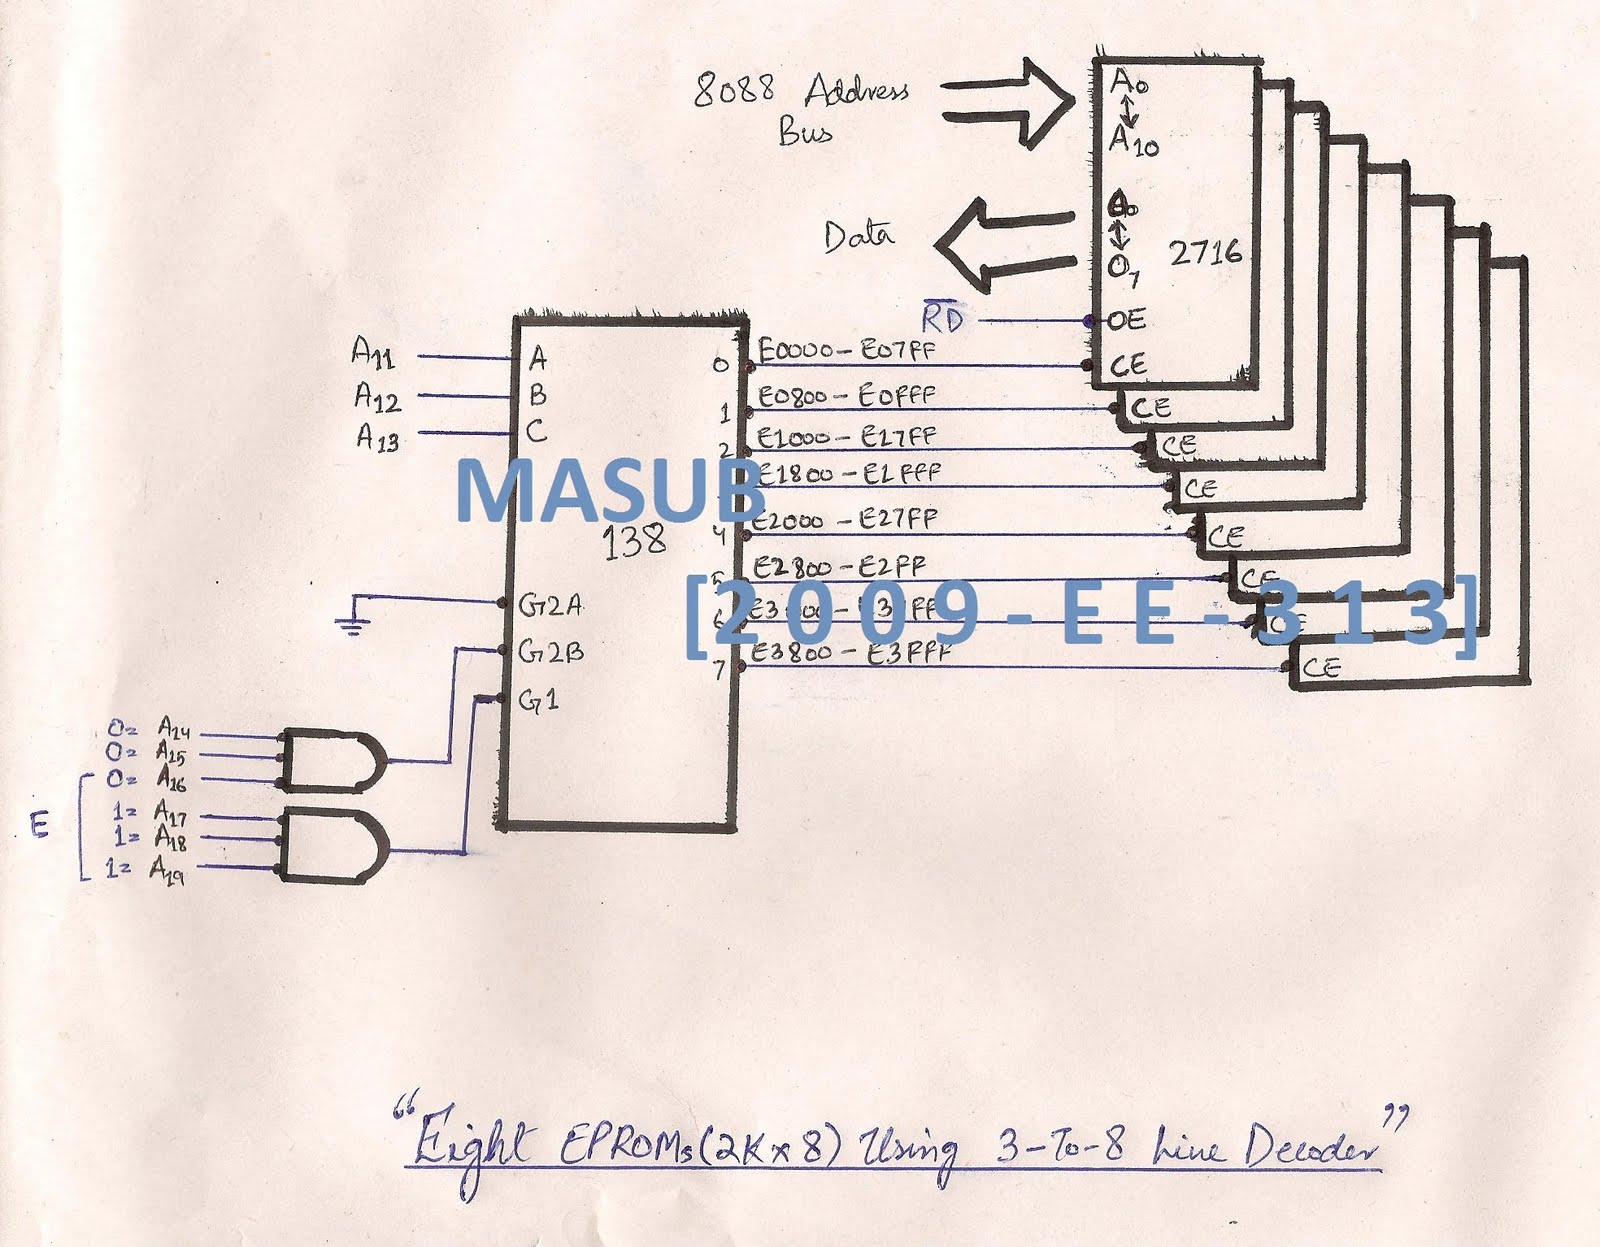 3 8 Decoder Logic Diagram Live With Masub Microprocessor Microcontroller Assignment Circuit 2kx8 Eprom To